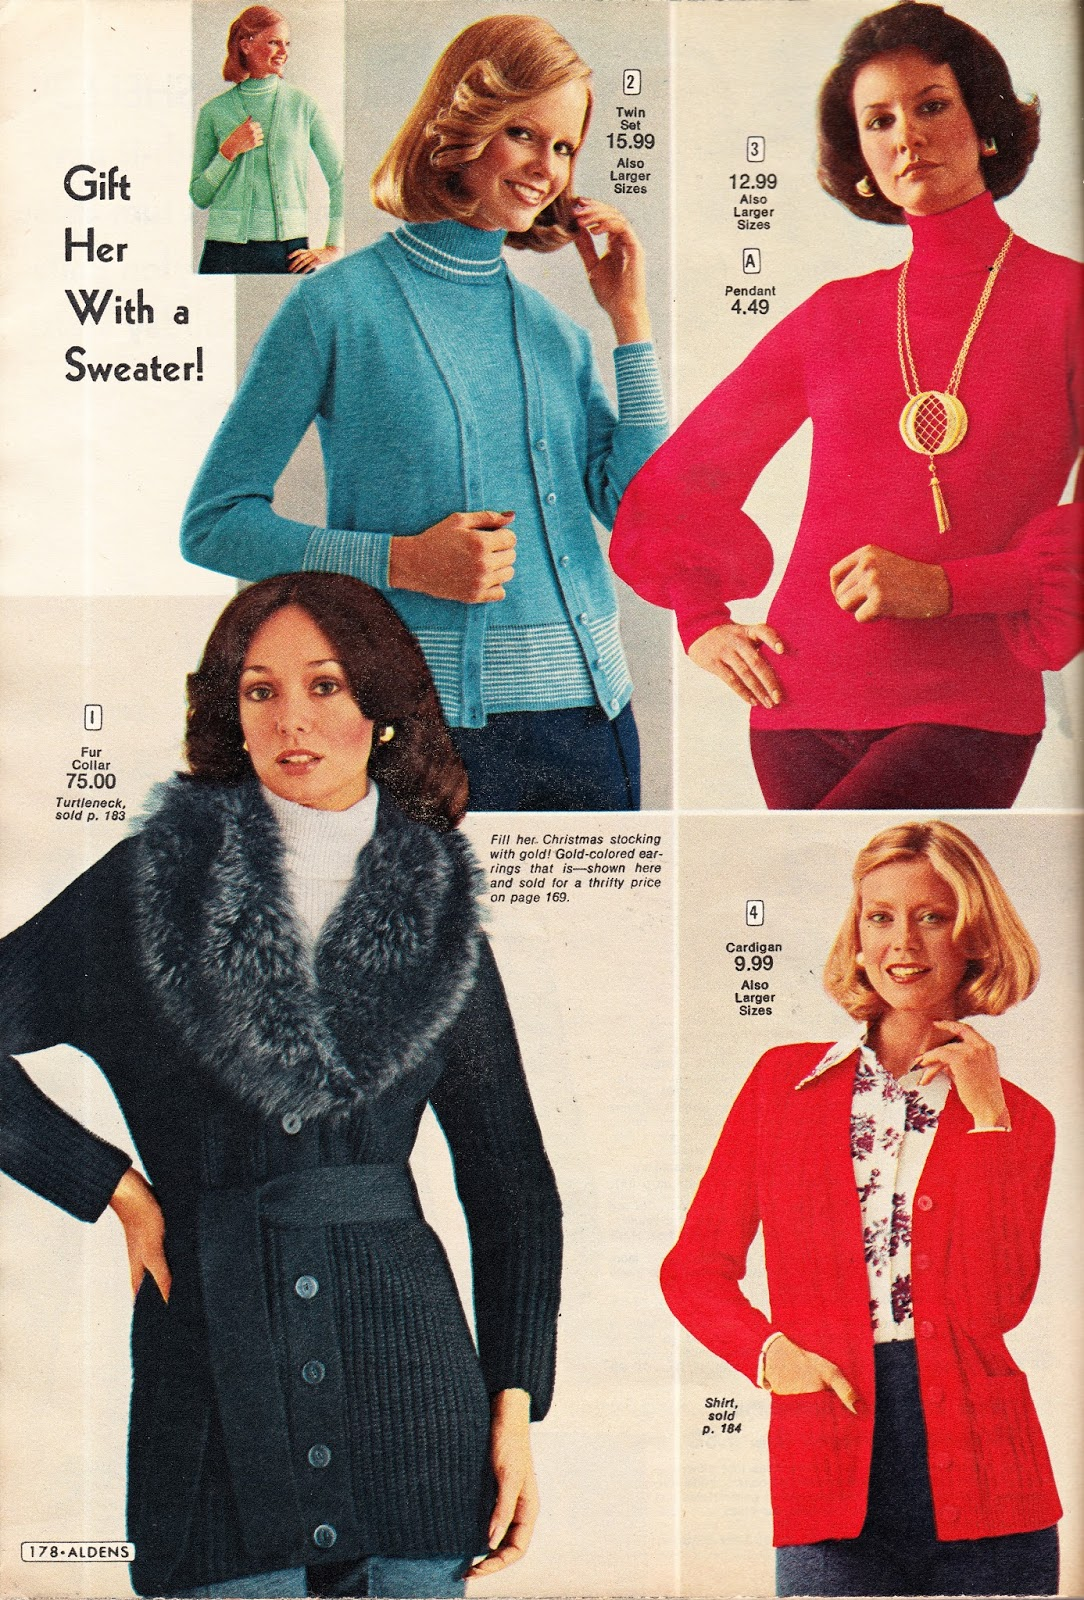 Kathy Loghry Blogspot: That\'s So 70s: Christmas Time is Sweater Time!